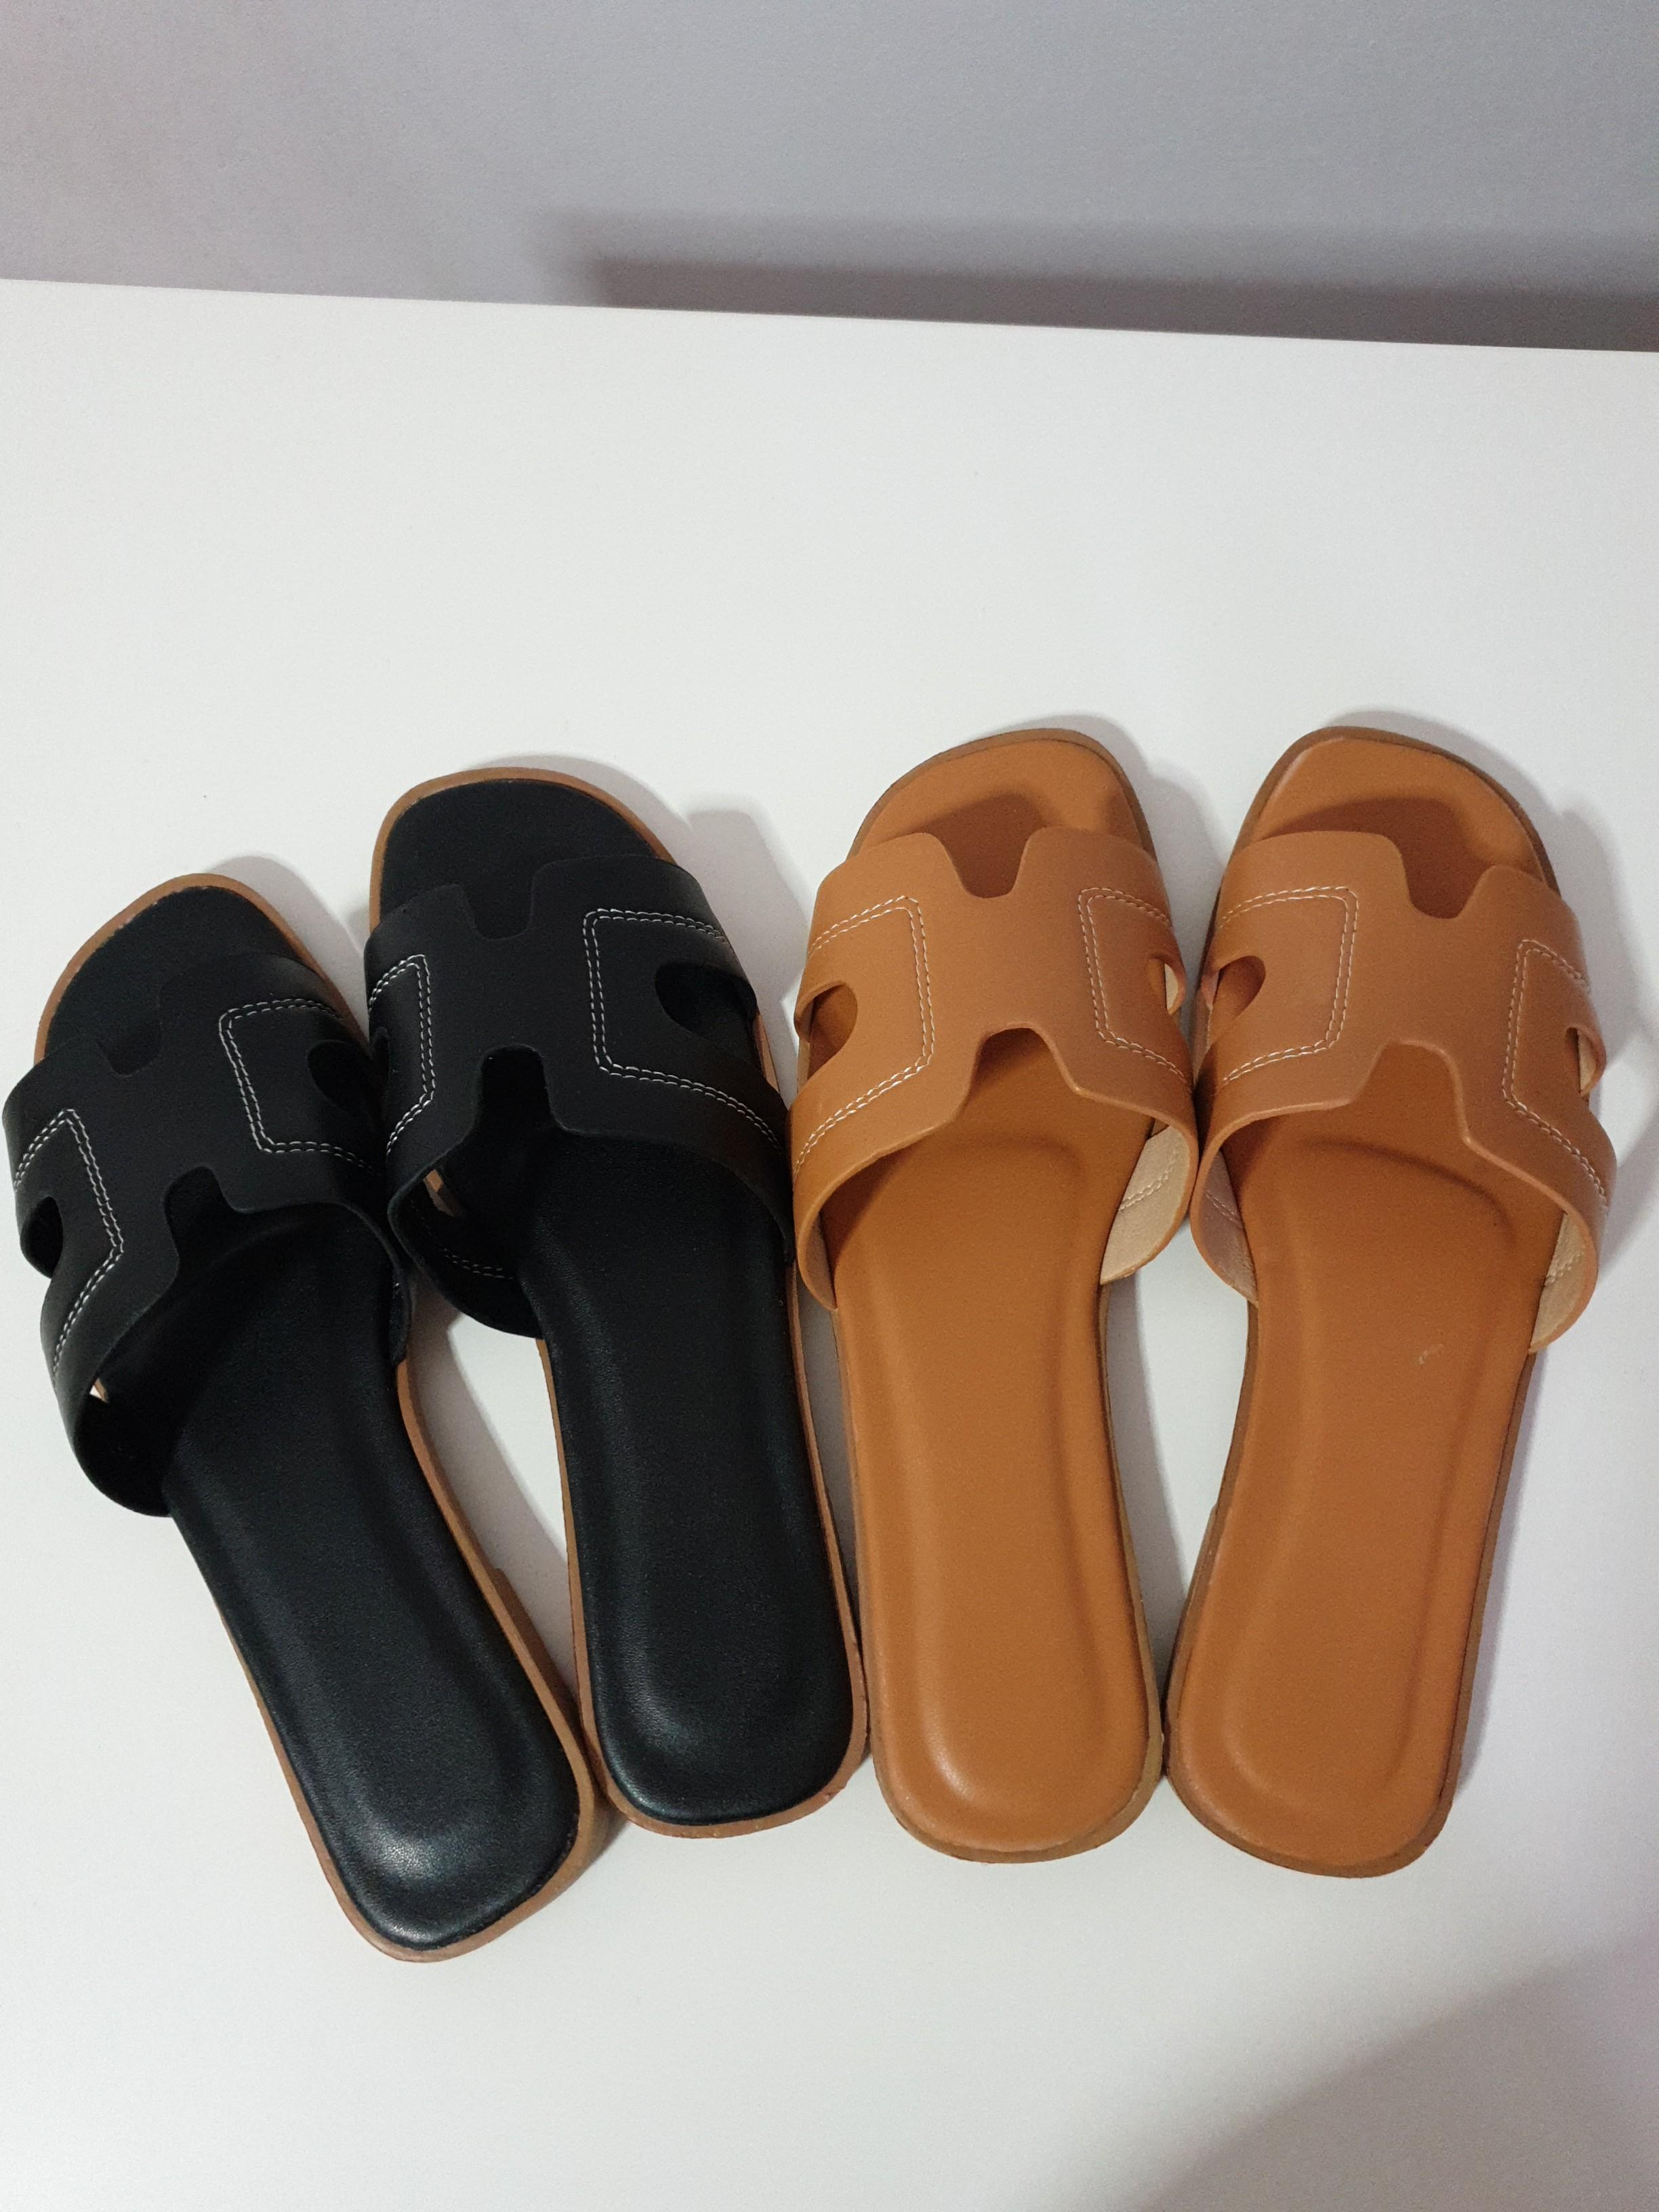 Size 38 Ladies sandals / Slippers